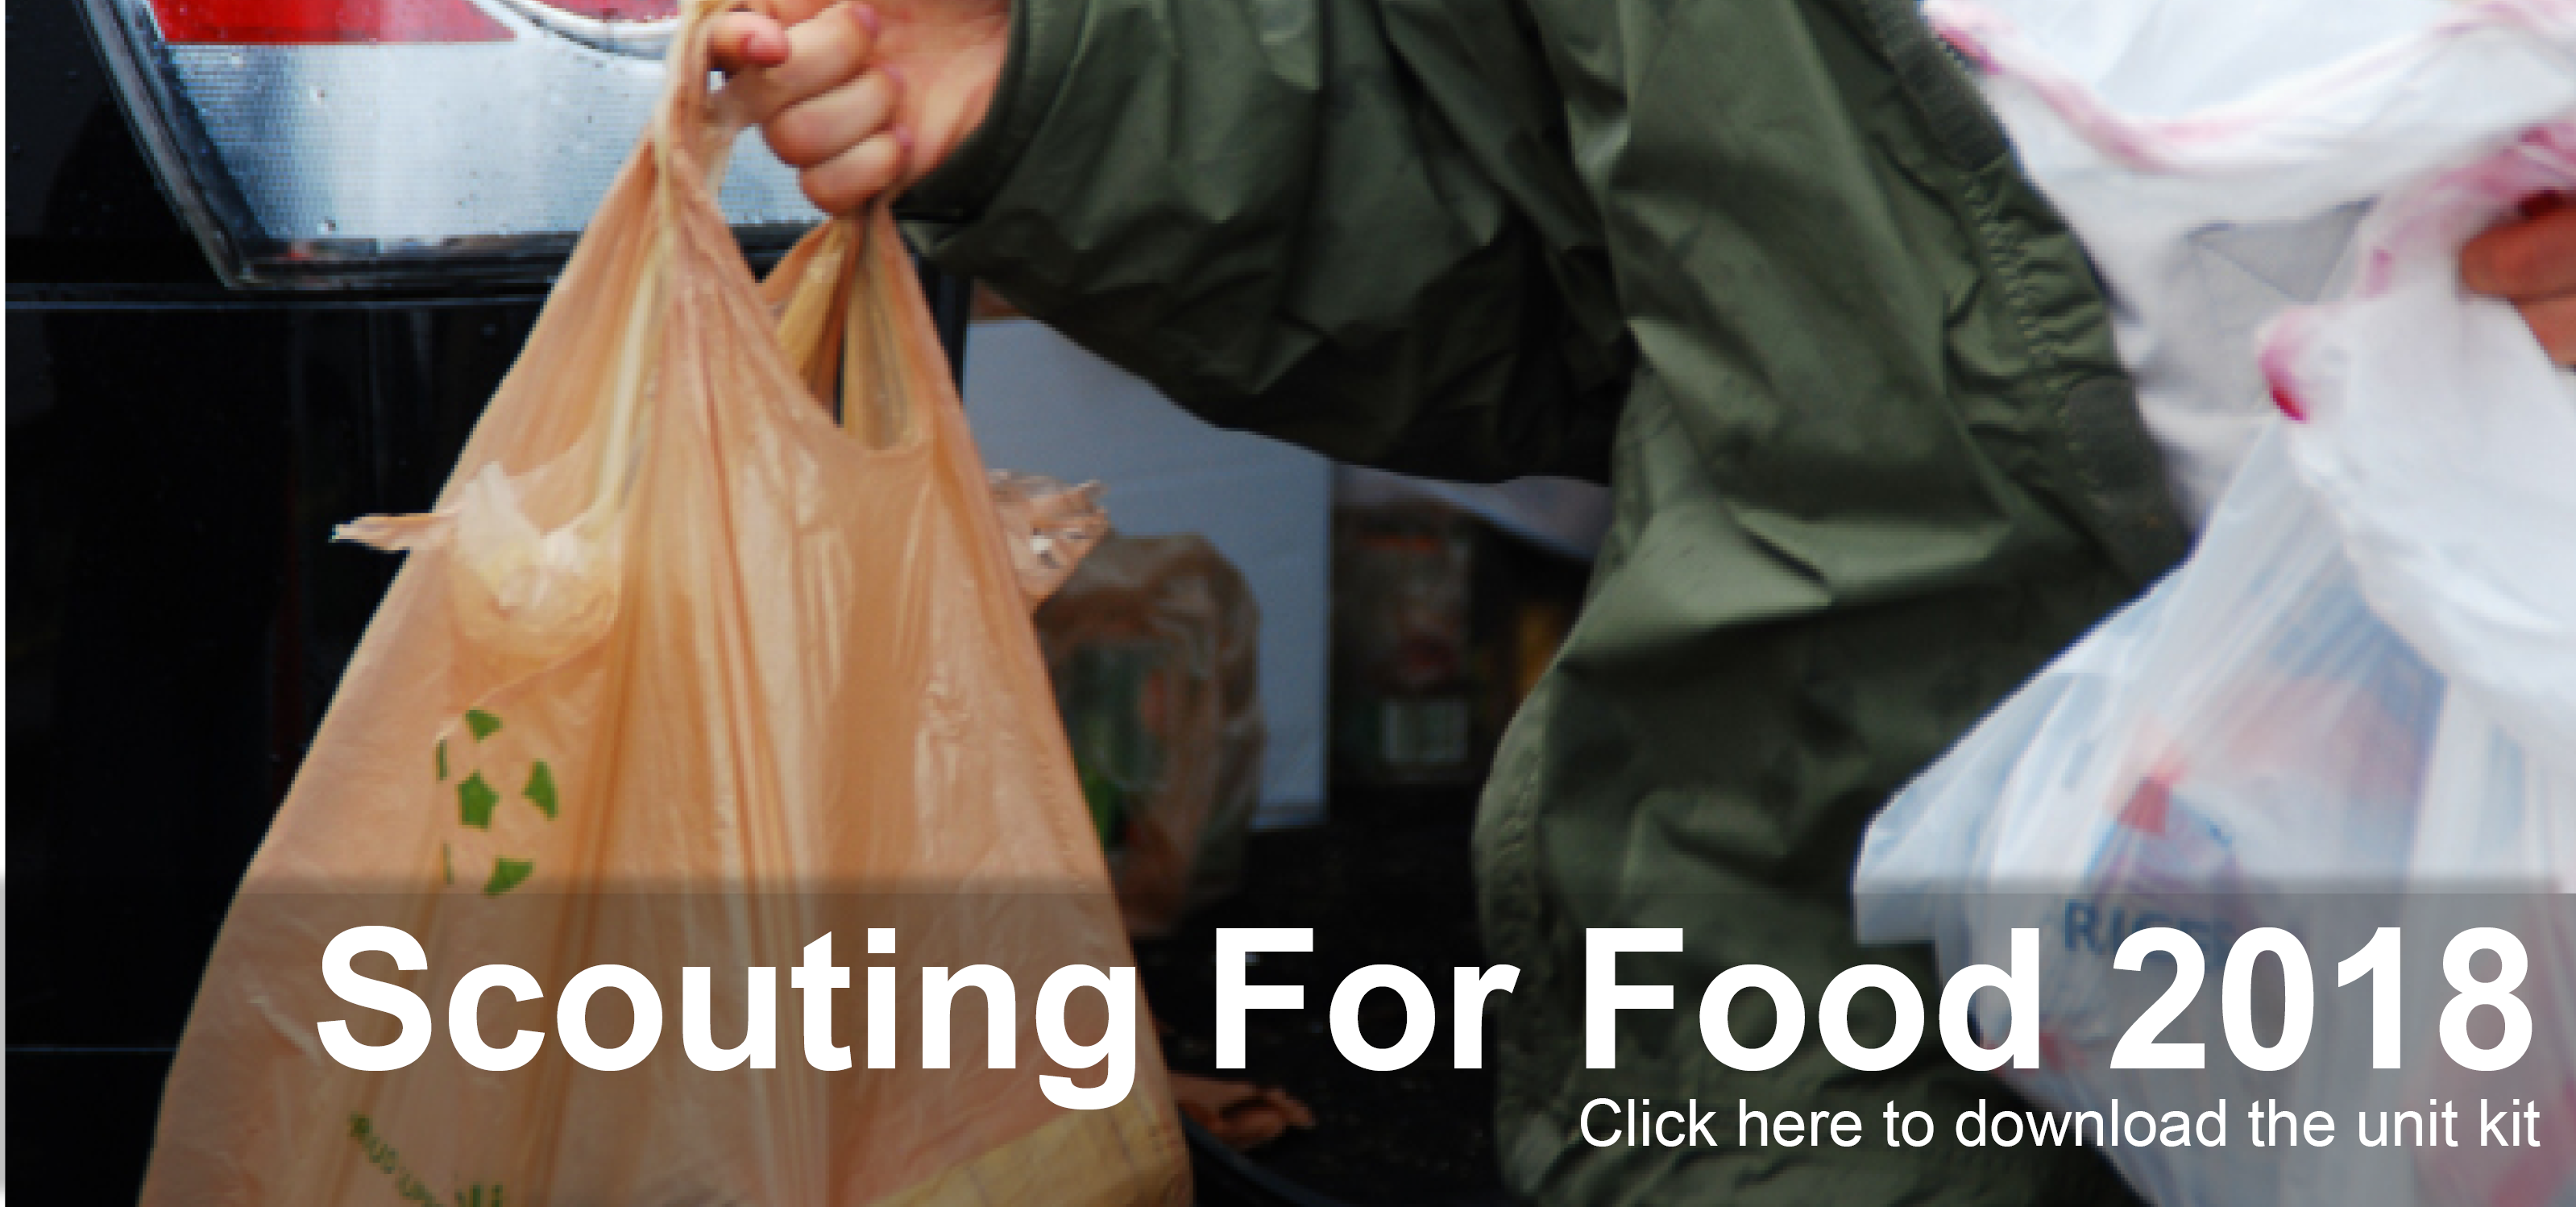 Click to download the Scouting for Food File Kit